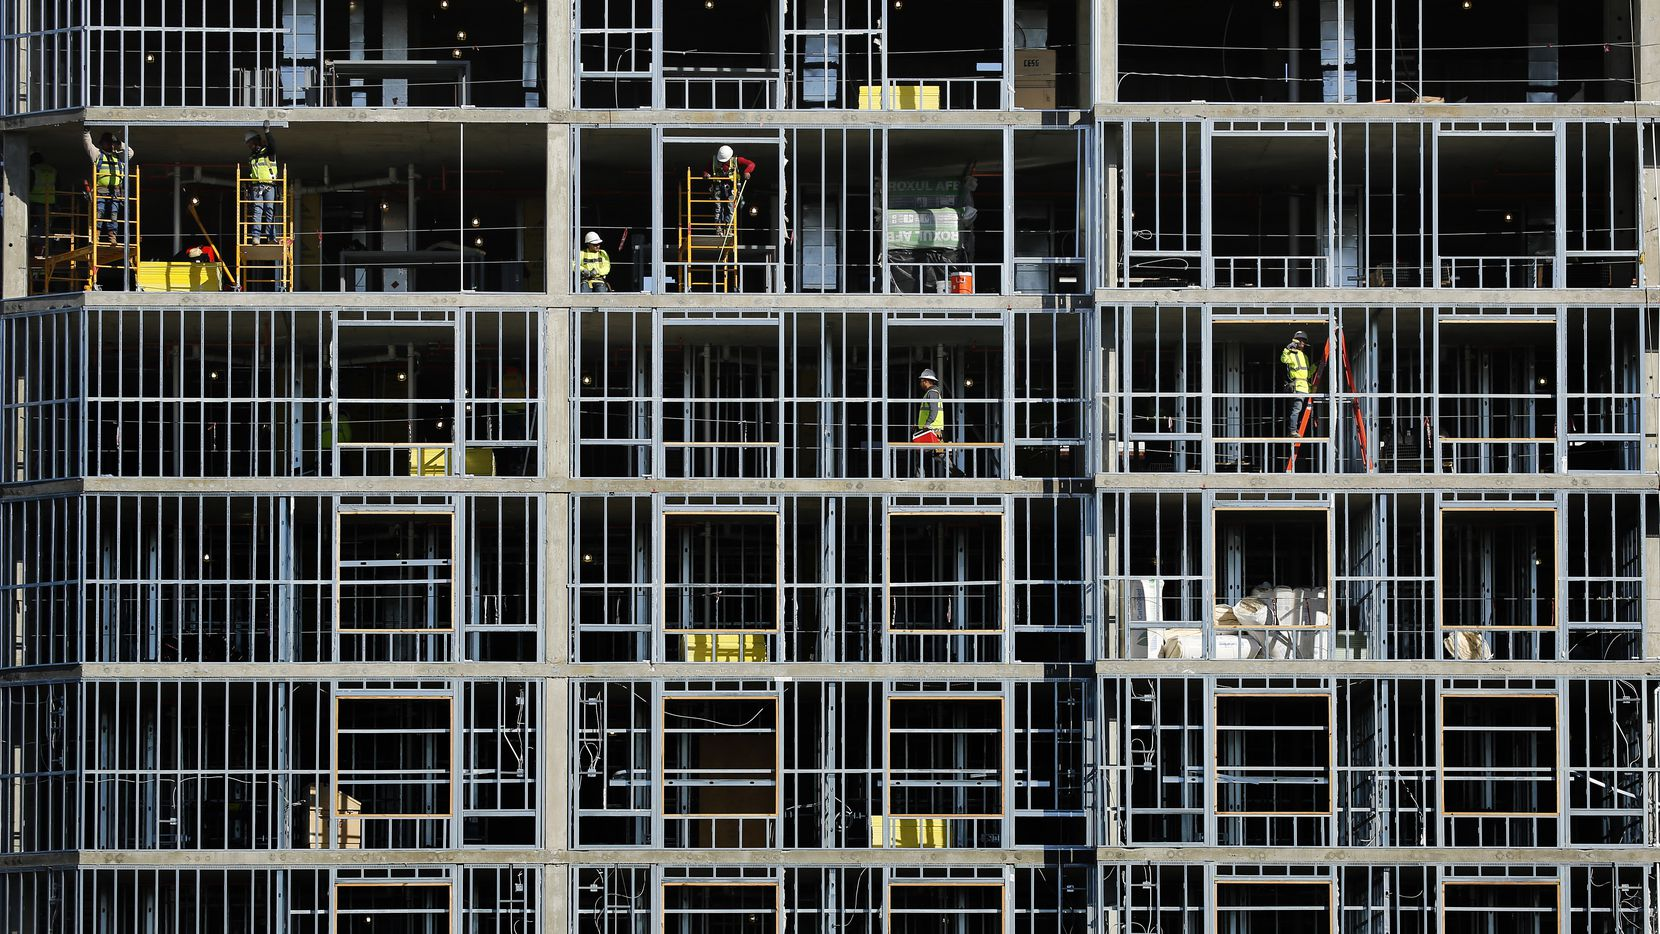 About 4 million square feet of office space is still under construction in North Texas — most of it already leased.